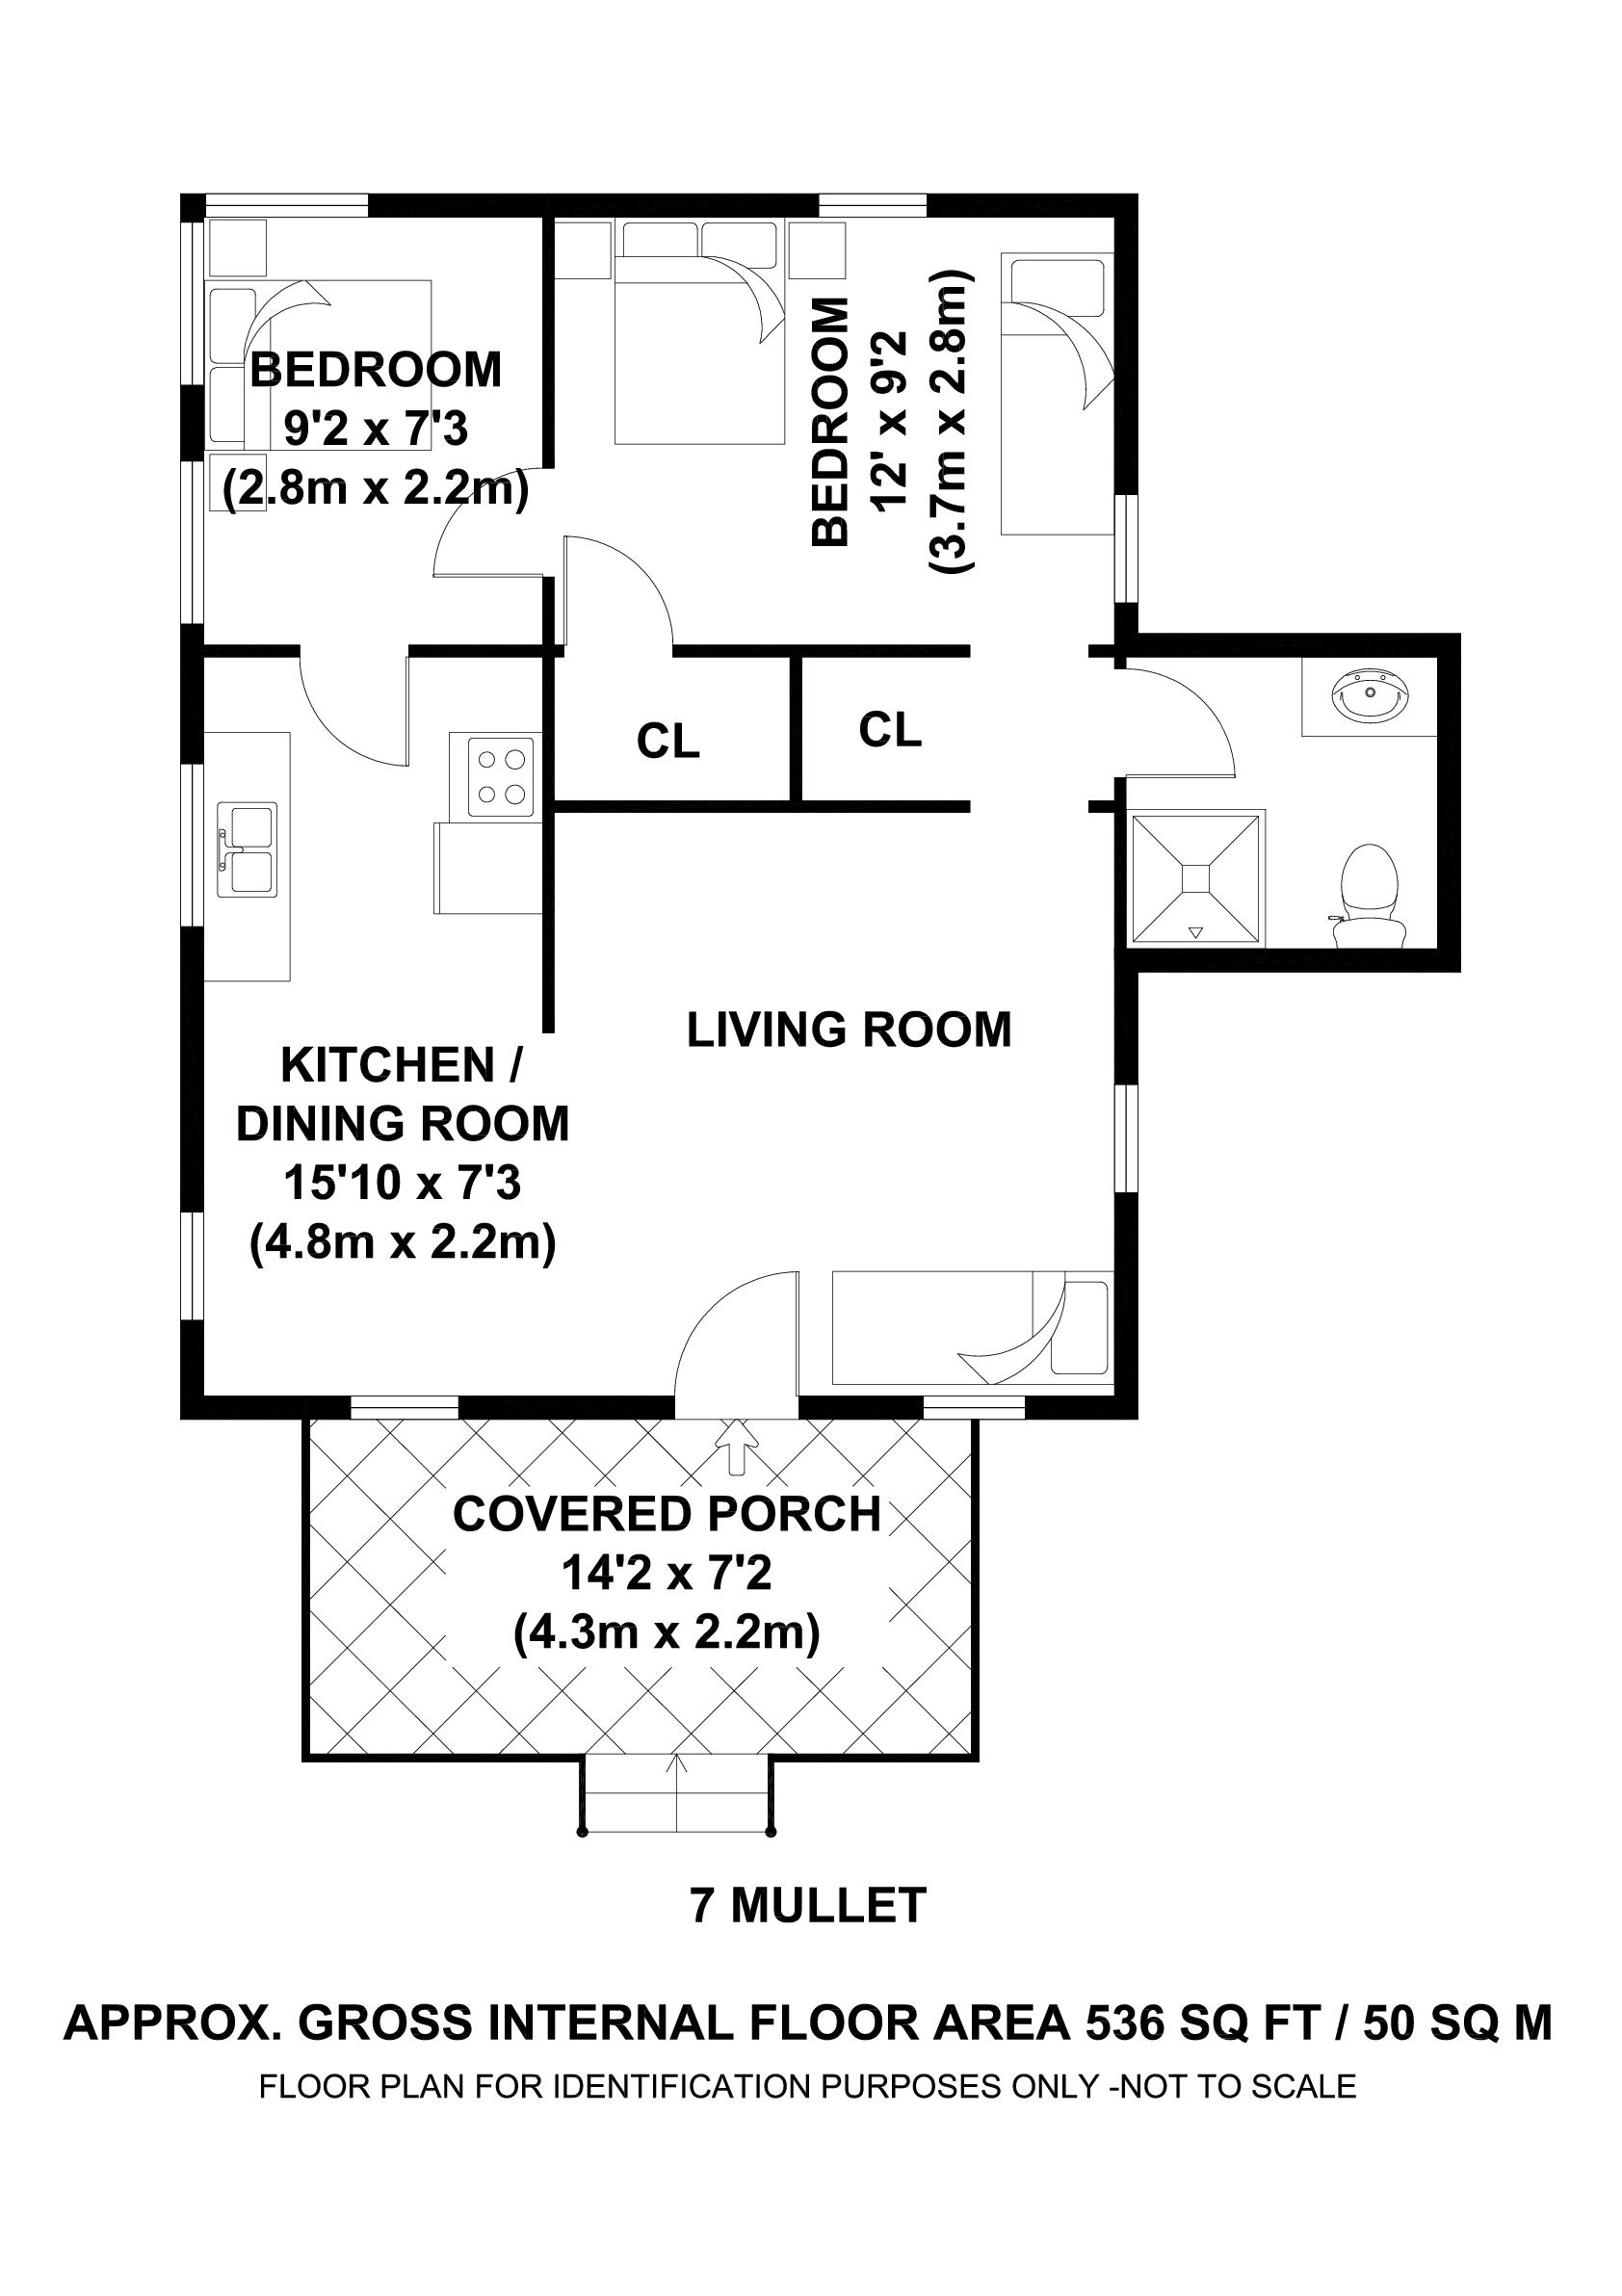 Hunting shack floor plans small hunting cabin plans for Hunting shack floor plans